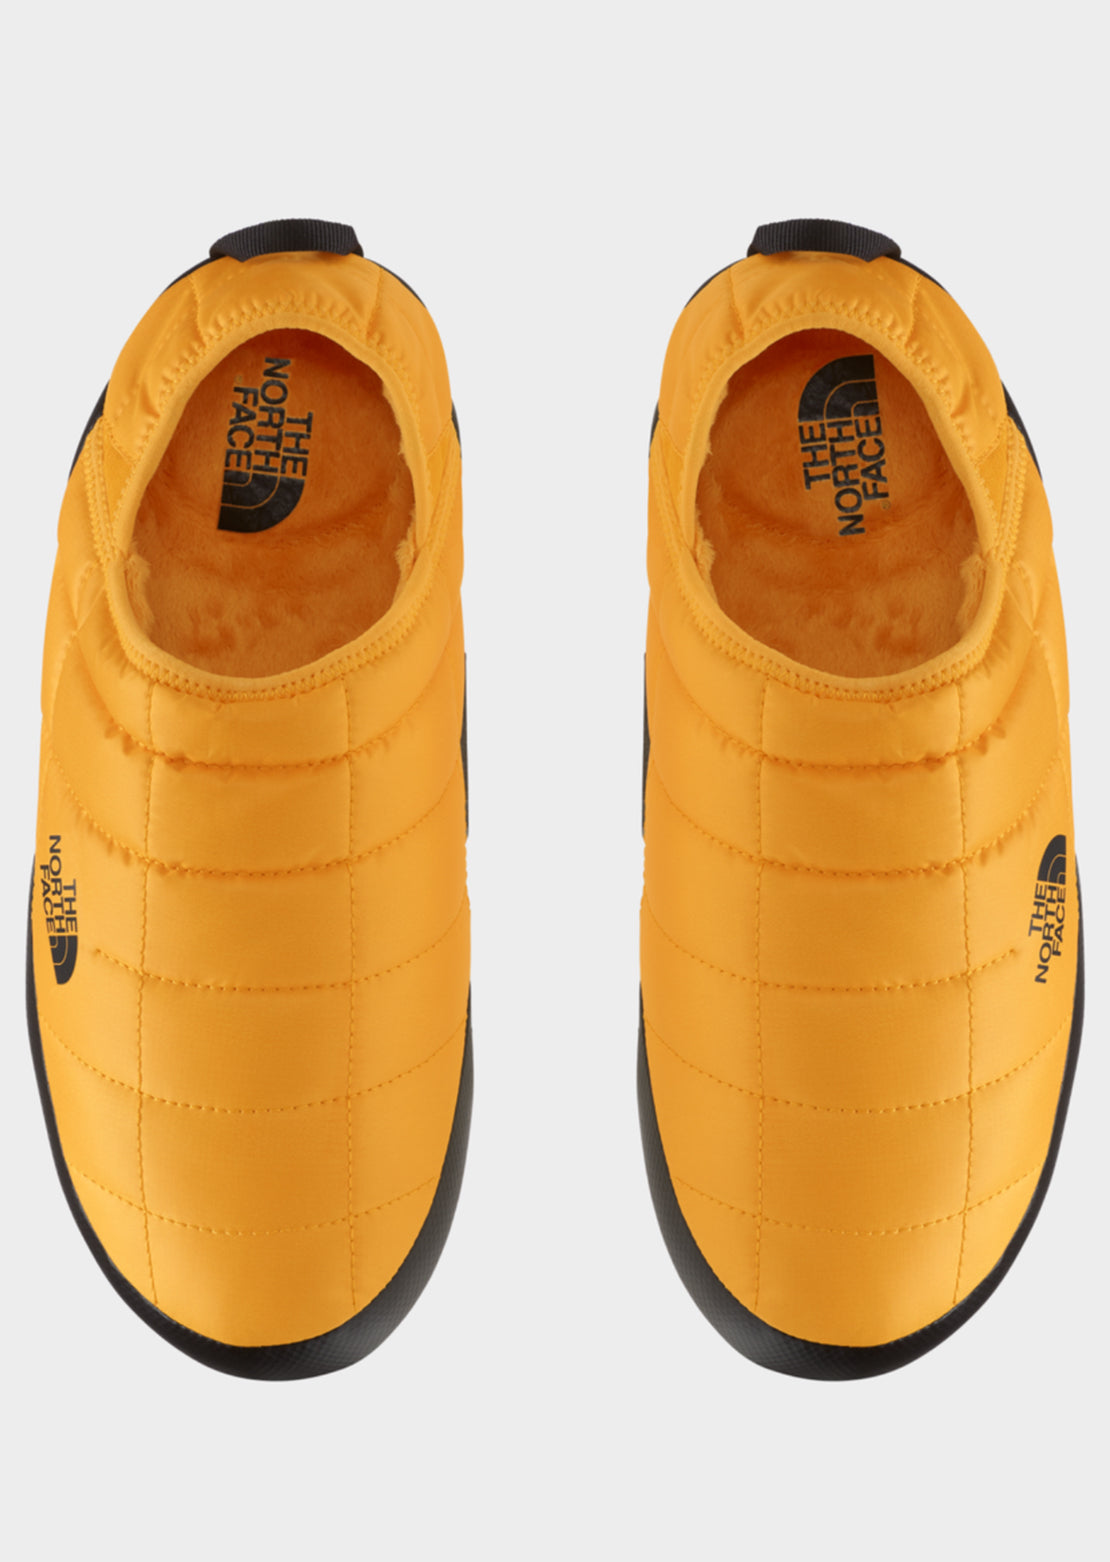 The North Face Men's ThermoBall Traction Mule V Slippers Summit Gold/TNF Black